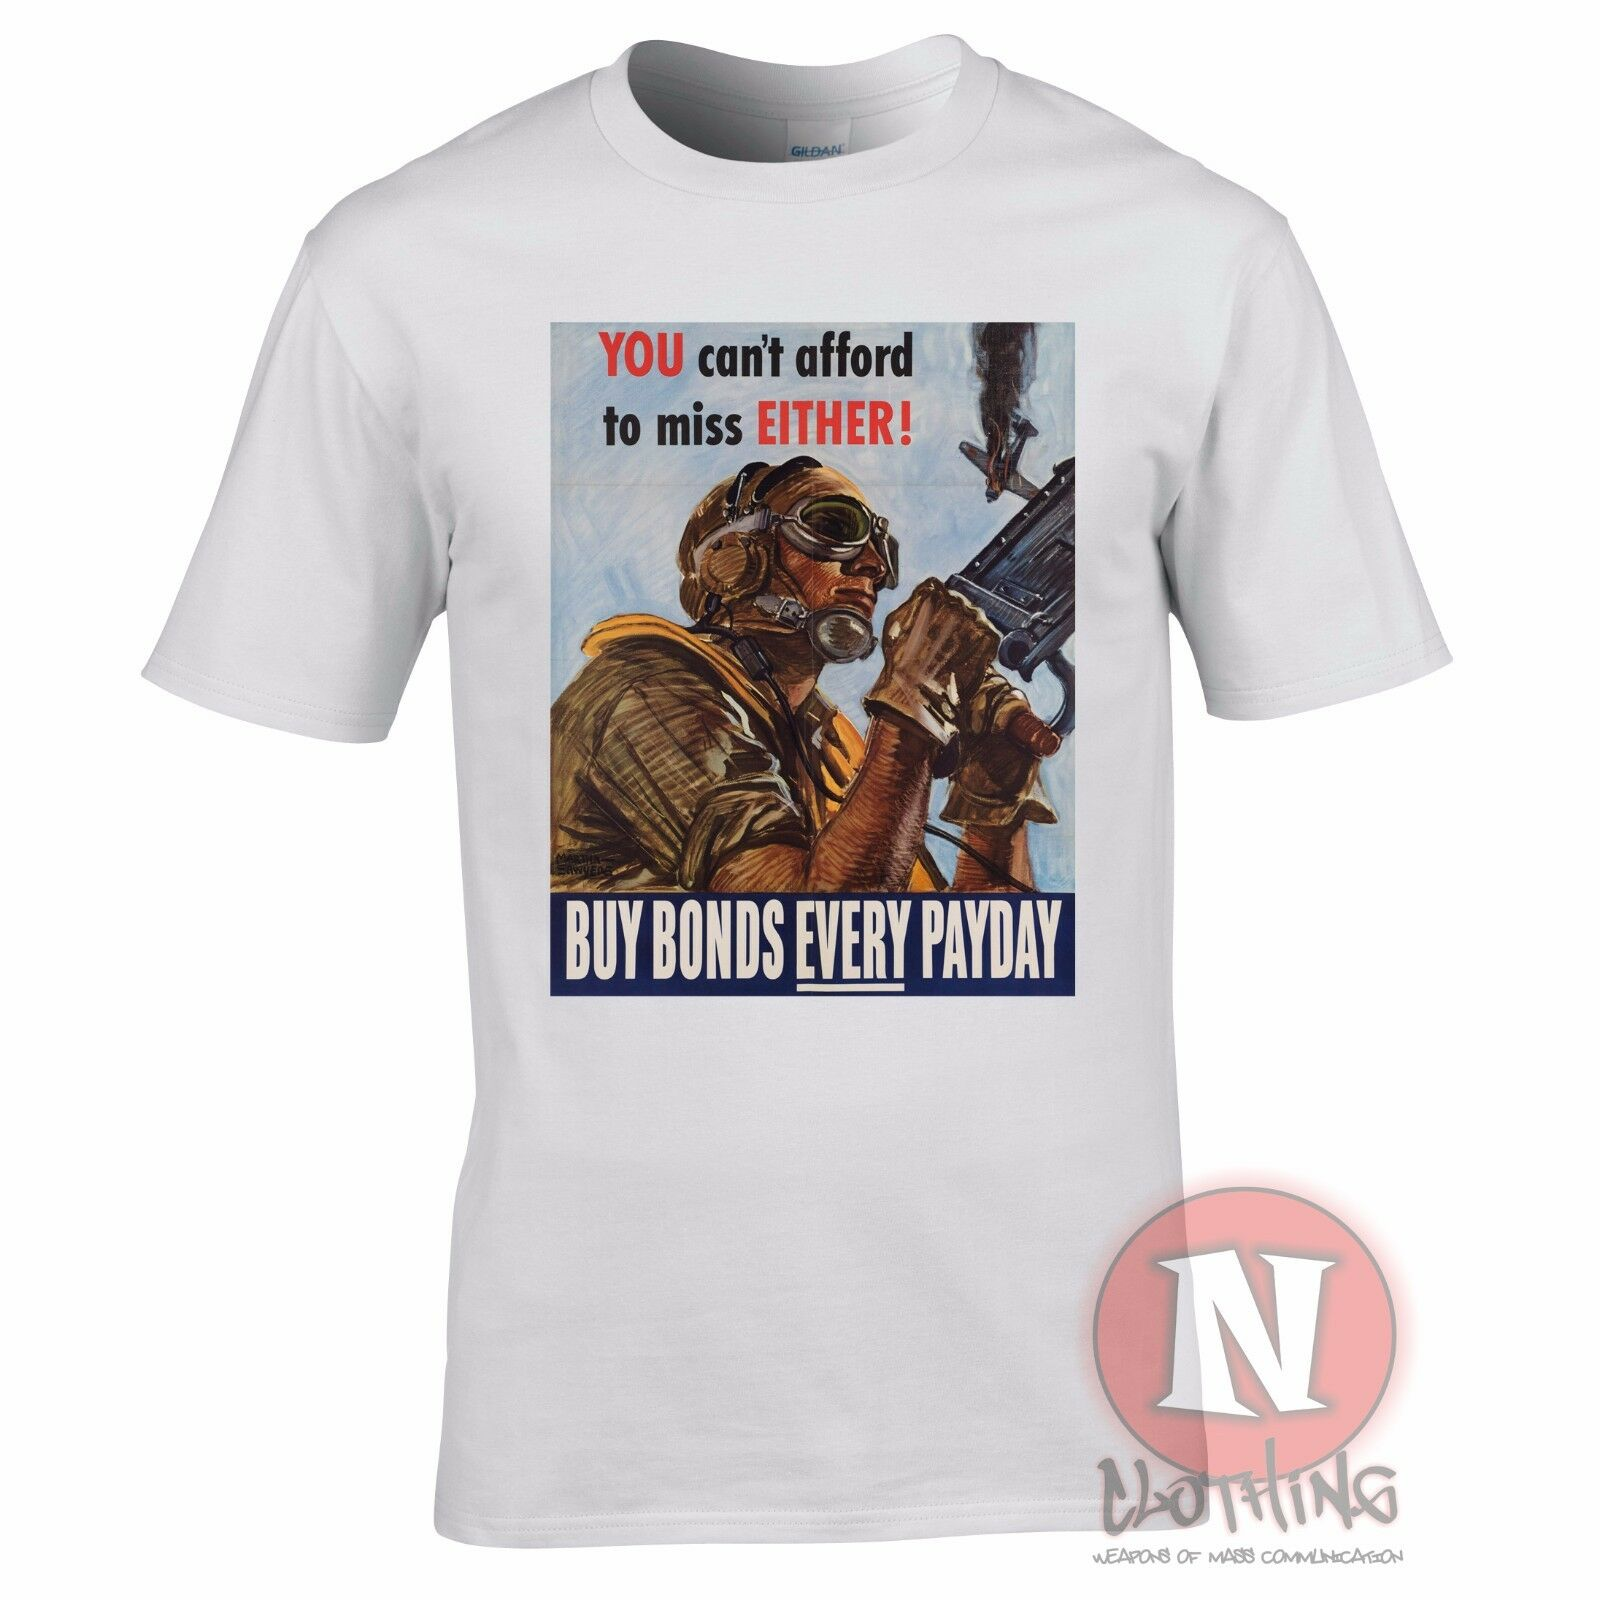 World War 2 USA propaganda Buy bonds every payday t shirt military history image